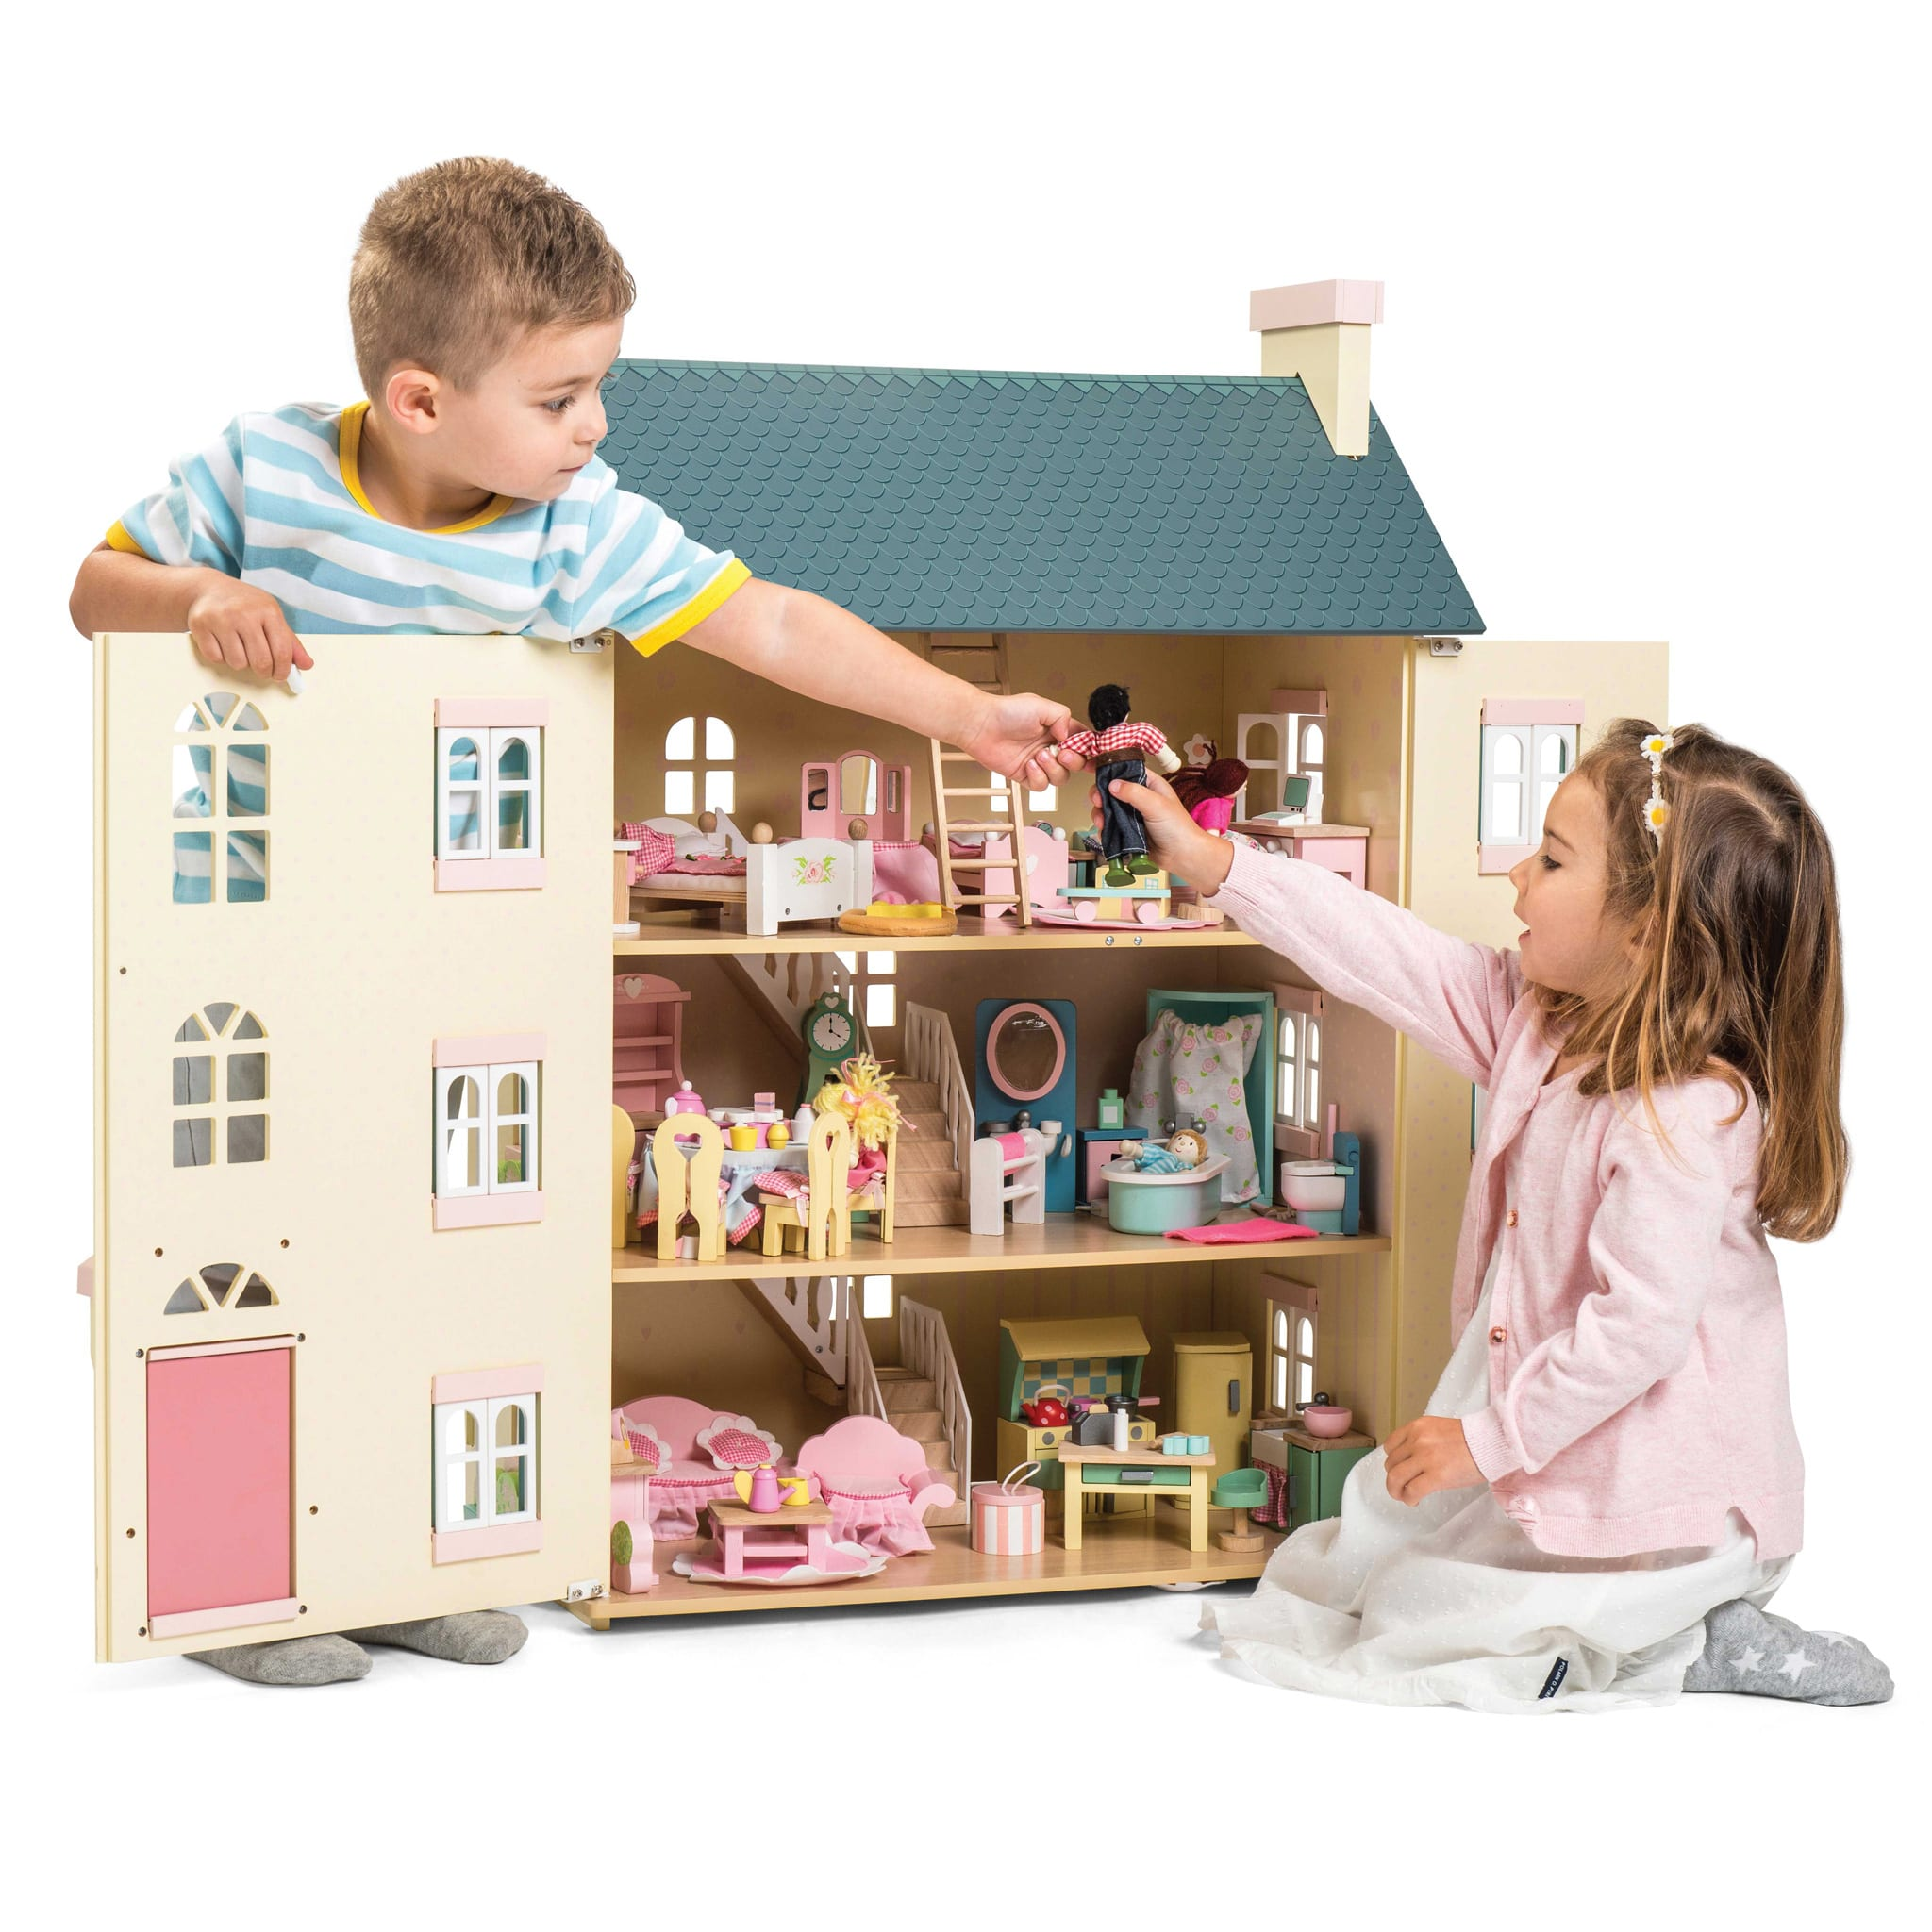 Wondrous Le Toy Van Cherry Tree Dollhouse With 6 Furniture Sets And Family Gamerscity Chair Design For Home Gamerscityorg